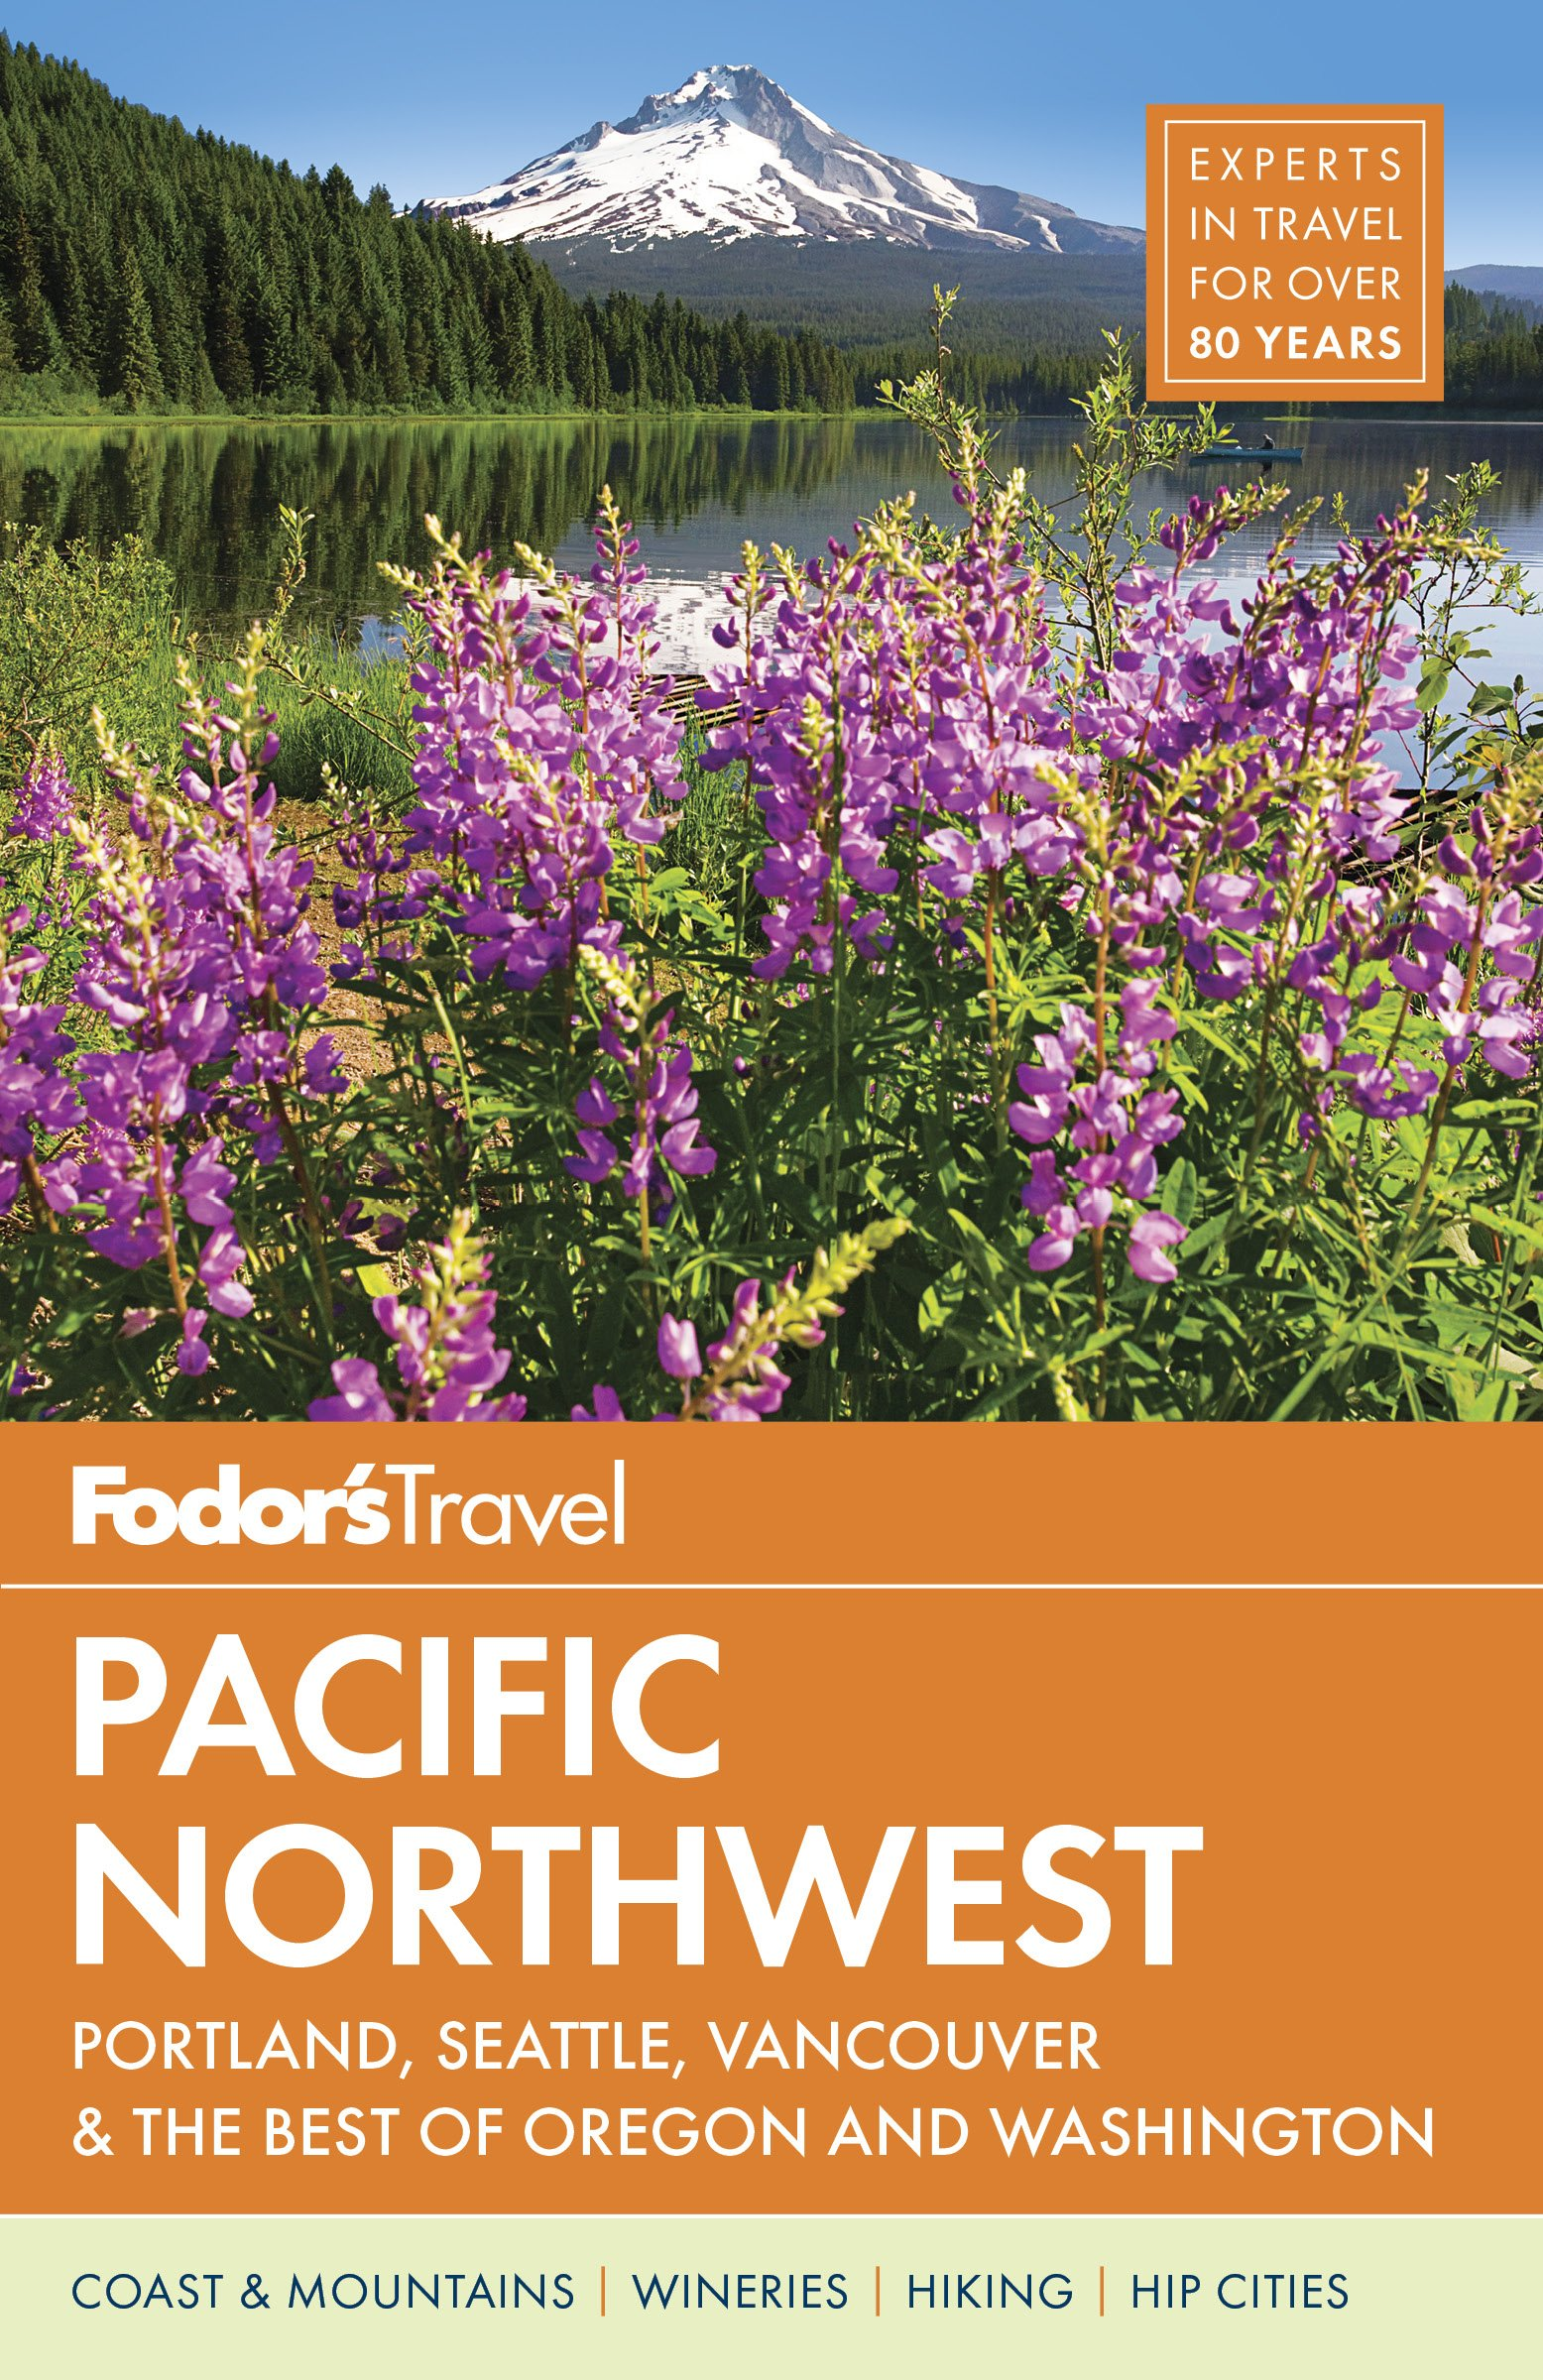 The Pacific Northwest guide, one of several Fodor's titles I currently contribute to